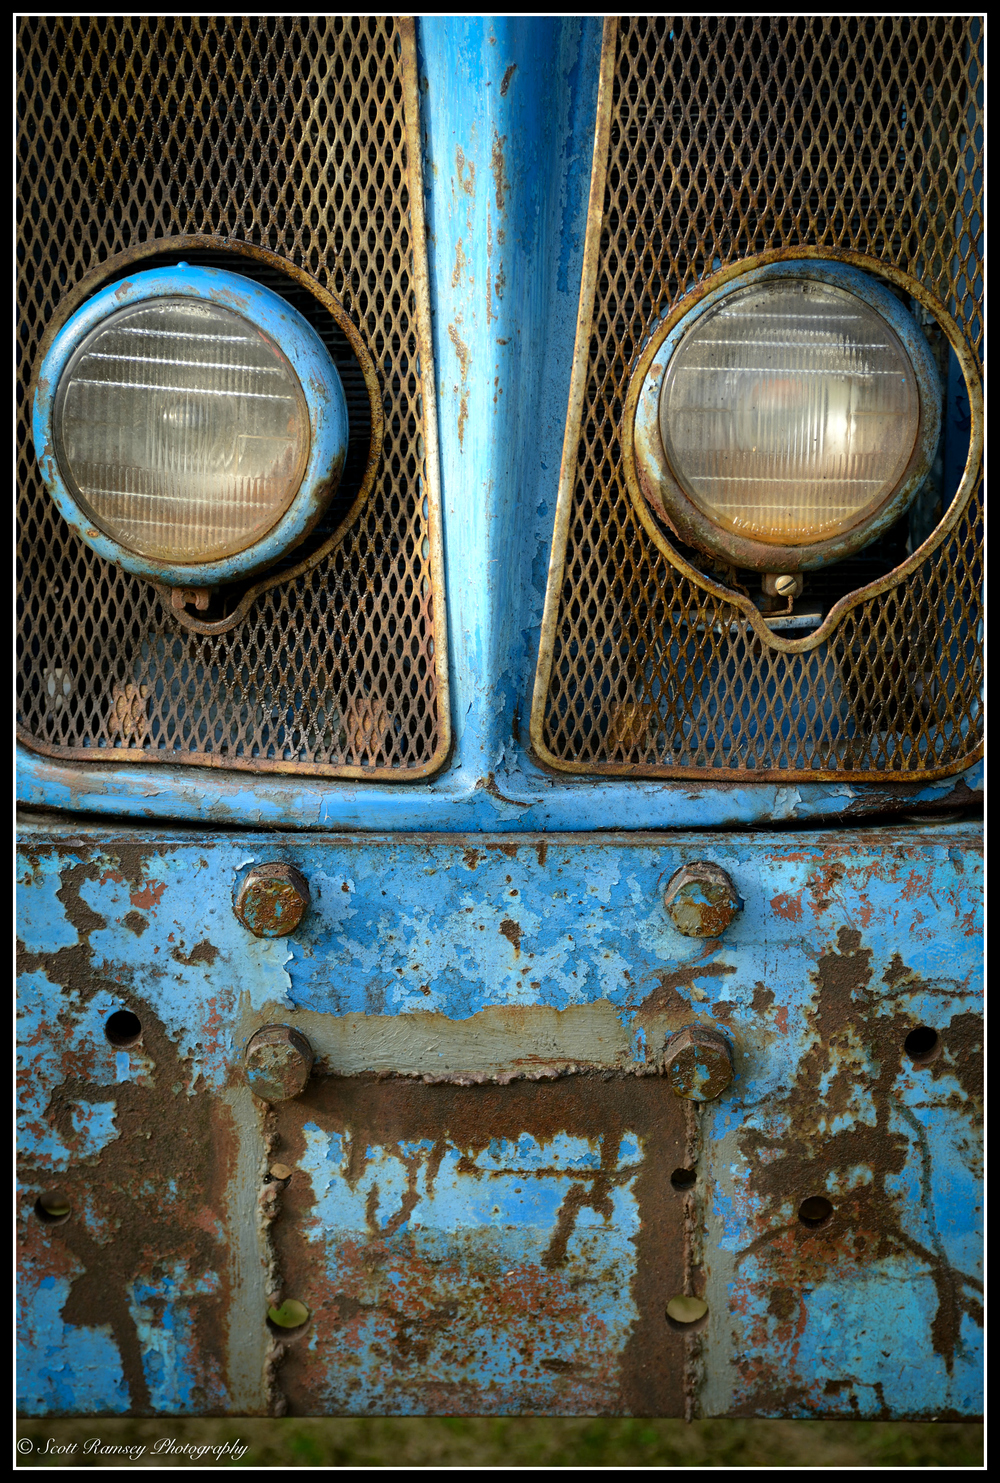 The front of this vintage tractor looked like a sad face.